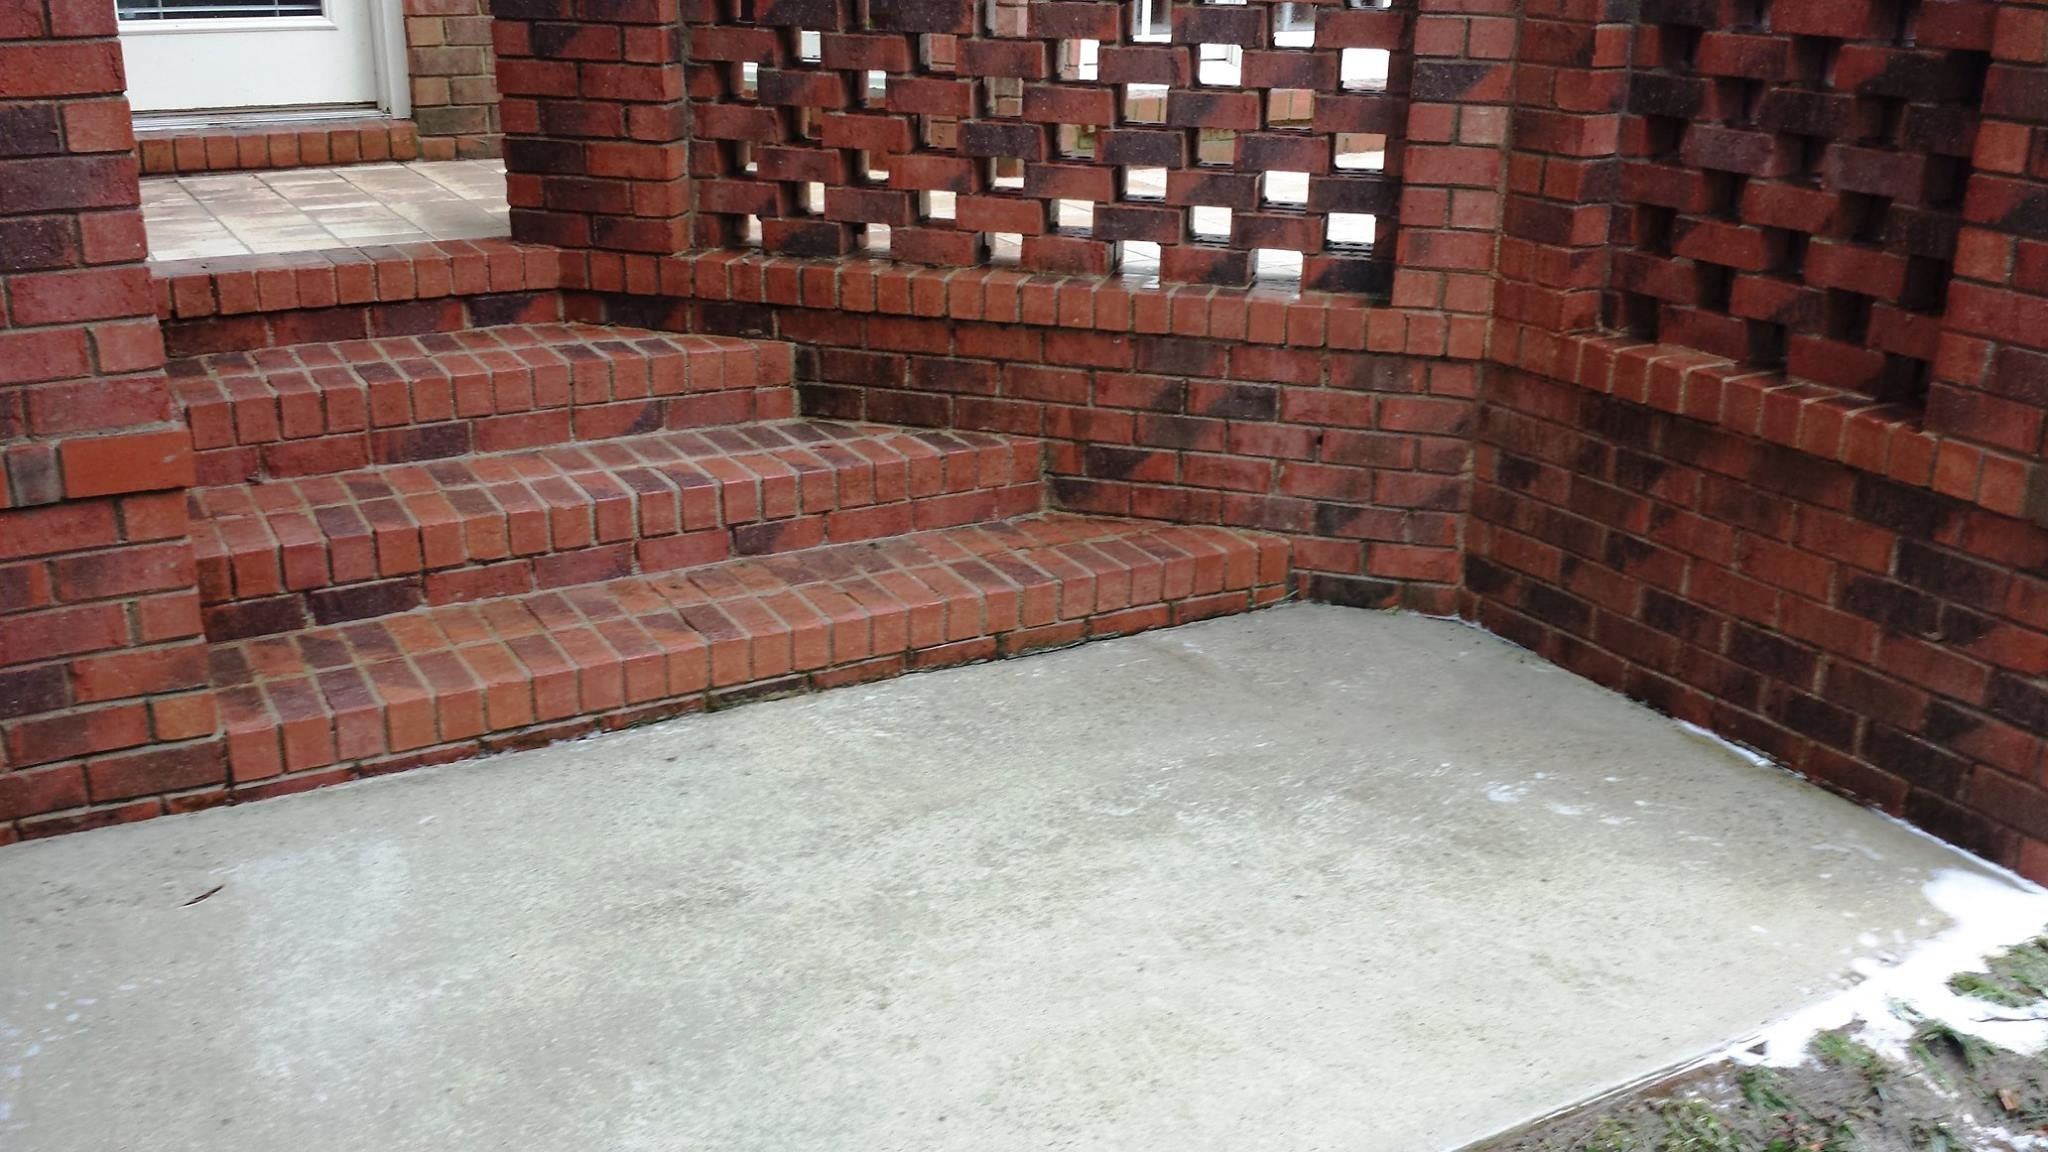 Brick/Concrete After Cleaning - Camelot Pressure Washing